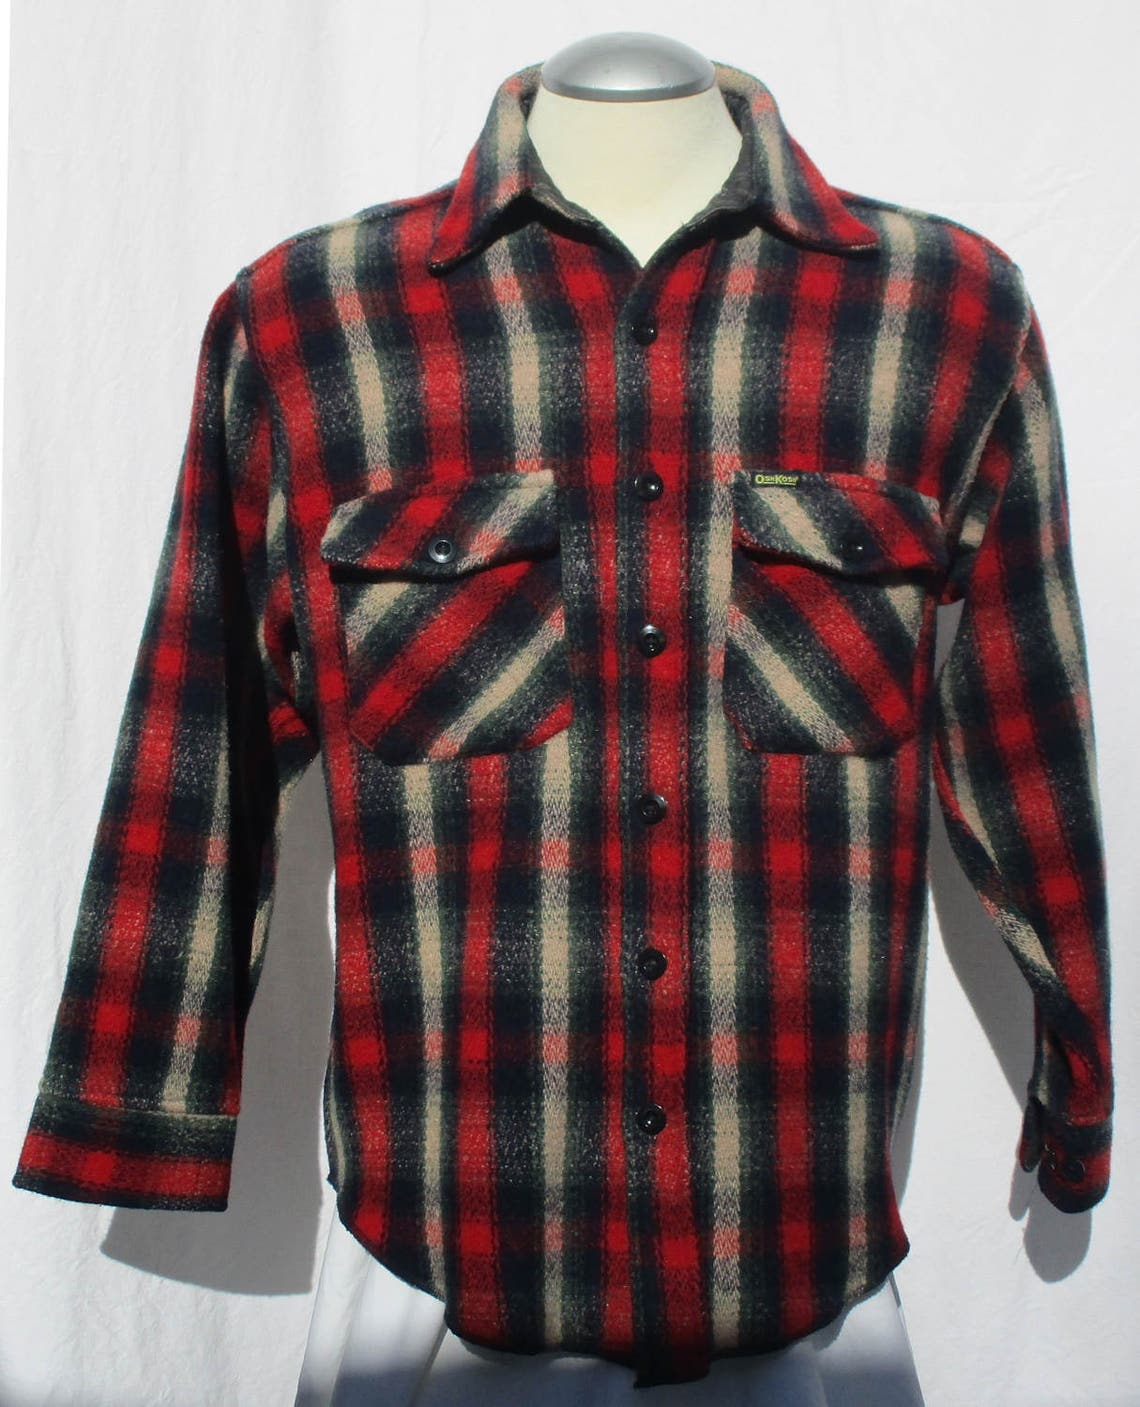 Osh Kosh B' Gosh 80s Red Plaid Button Front Shirt Jacket Size 40 M Patch Pockets Collar Long Sleeve The Genuine Article Rayon Wool Vintage